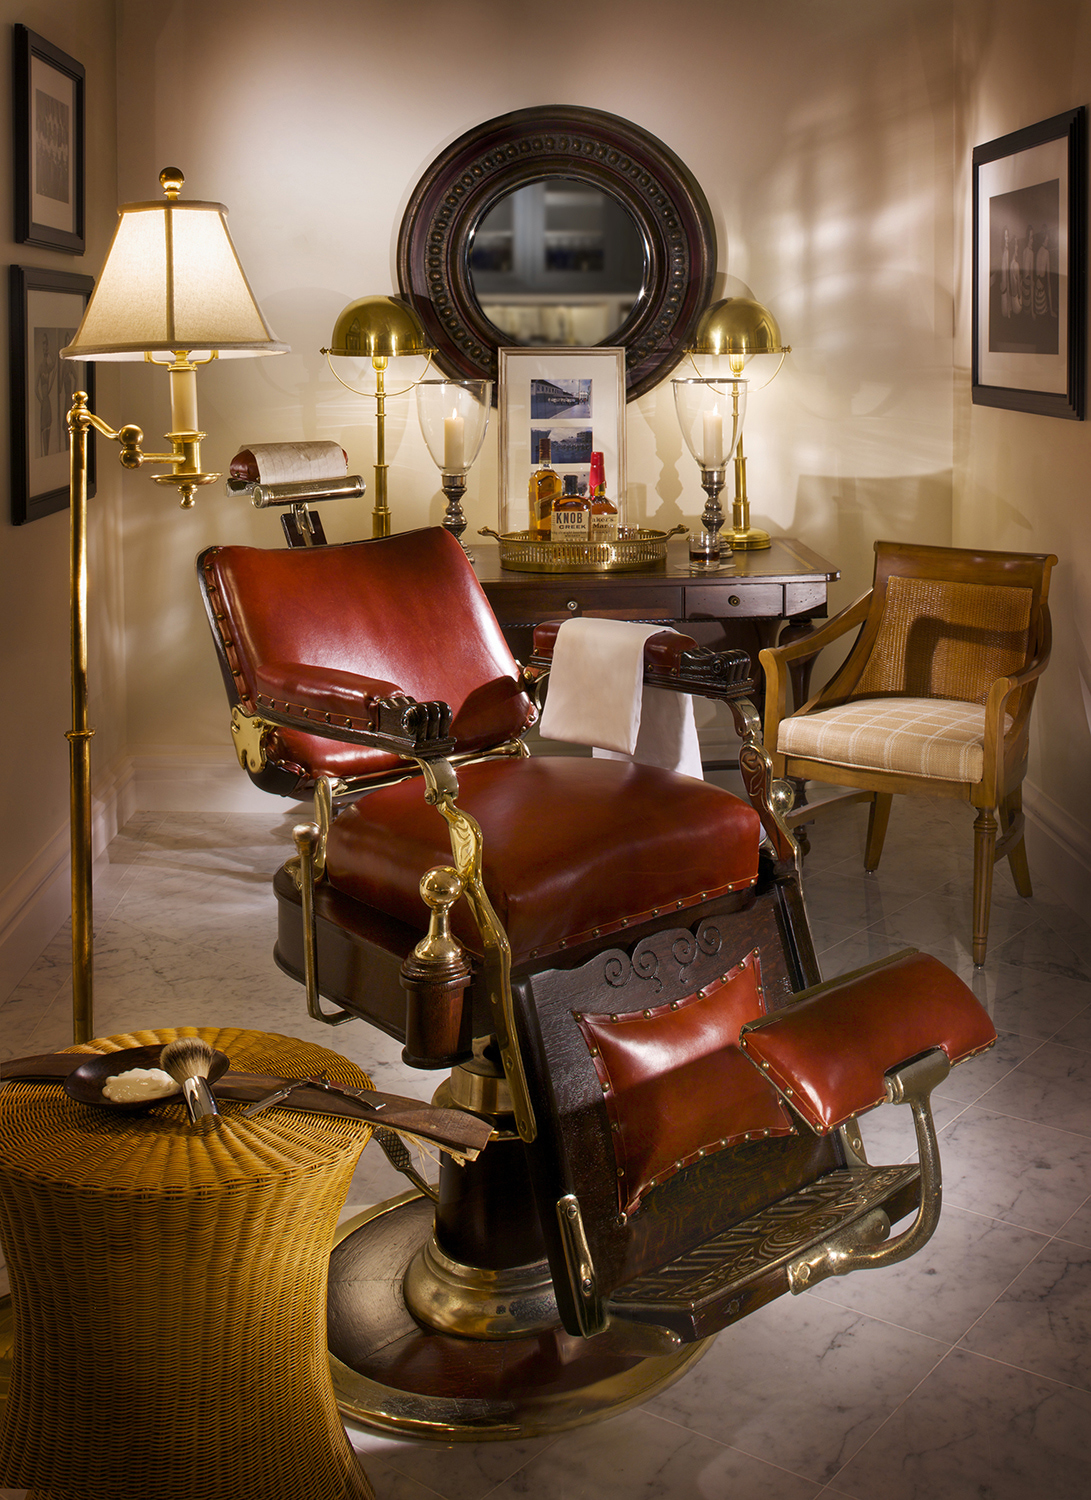 Old Barber Chairs Barber Girl Photos Antique Barber Chair